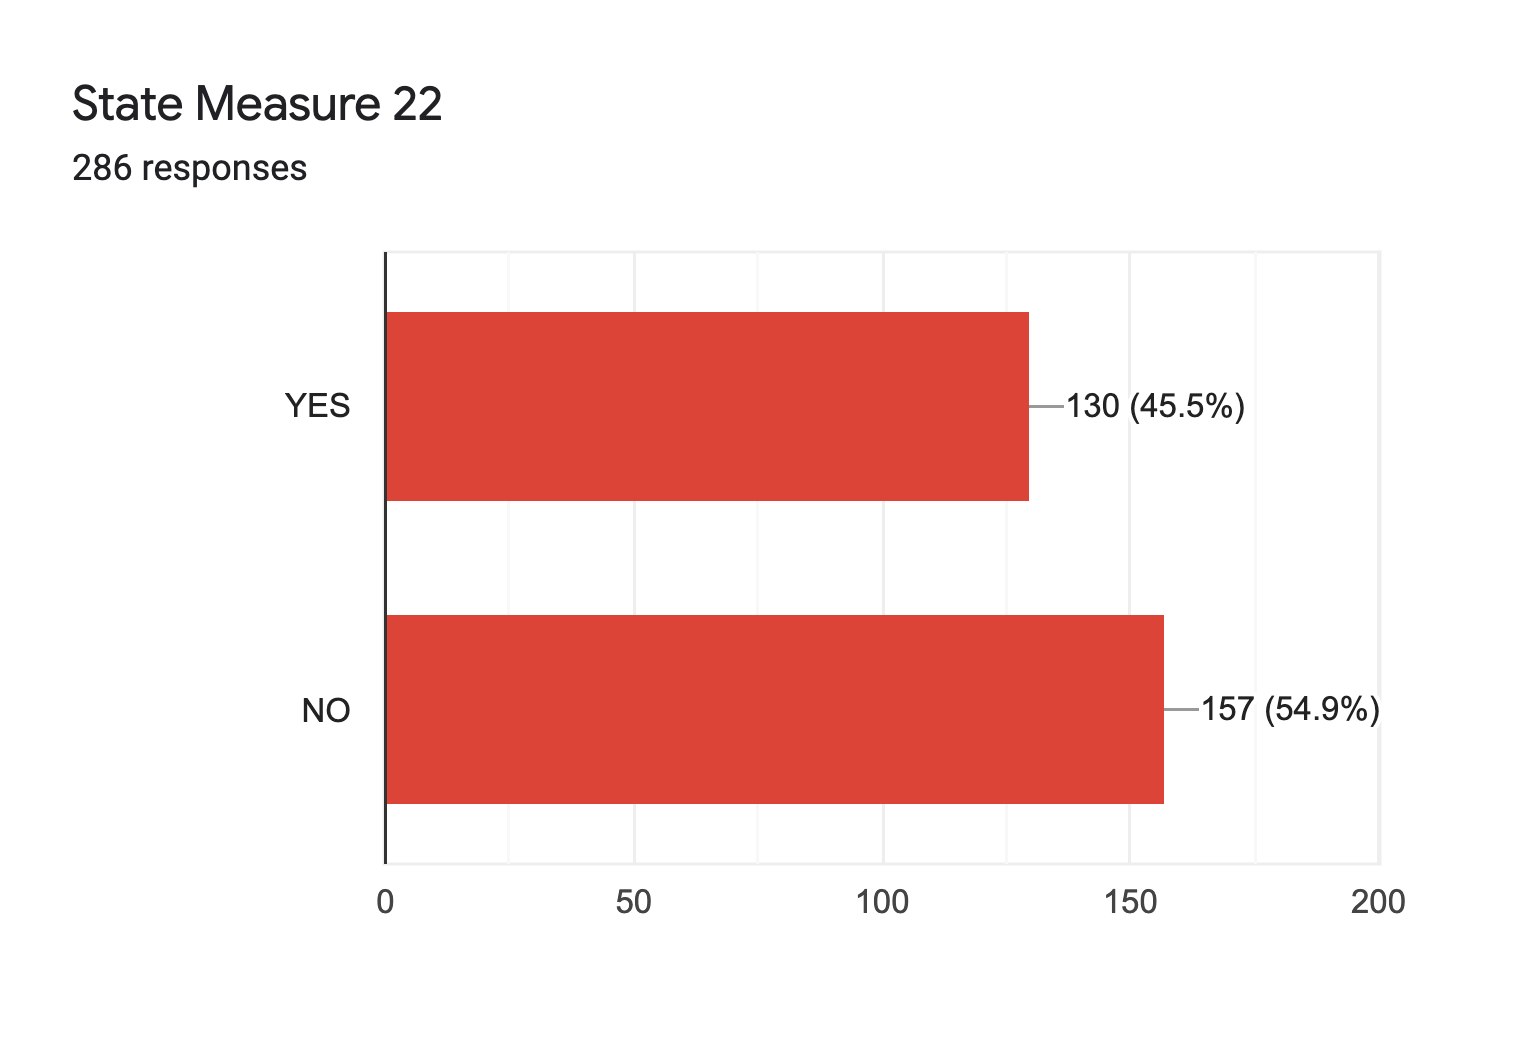 Forms response chart. Question title: State Measure 22. Number of responses: 286 responses.